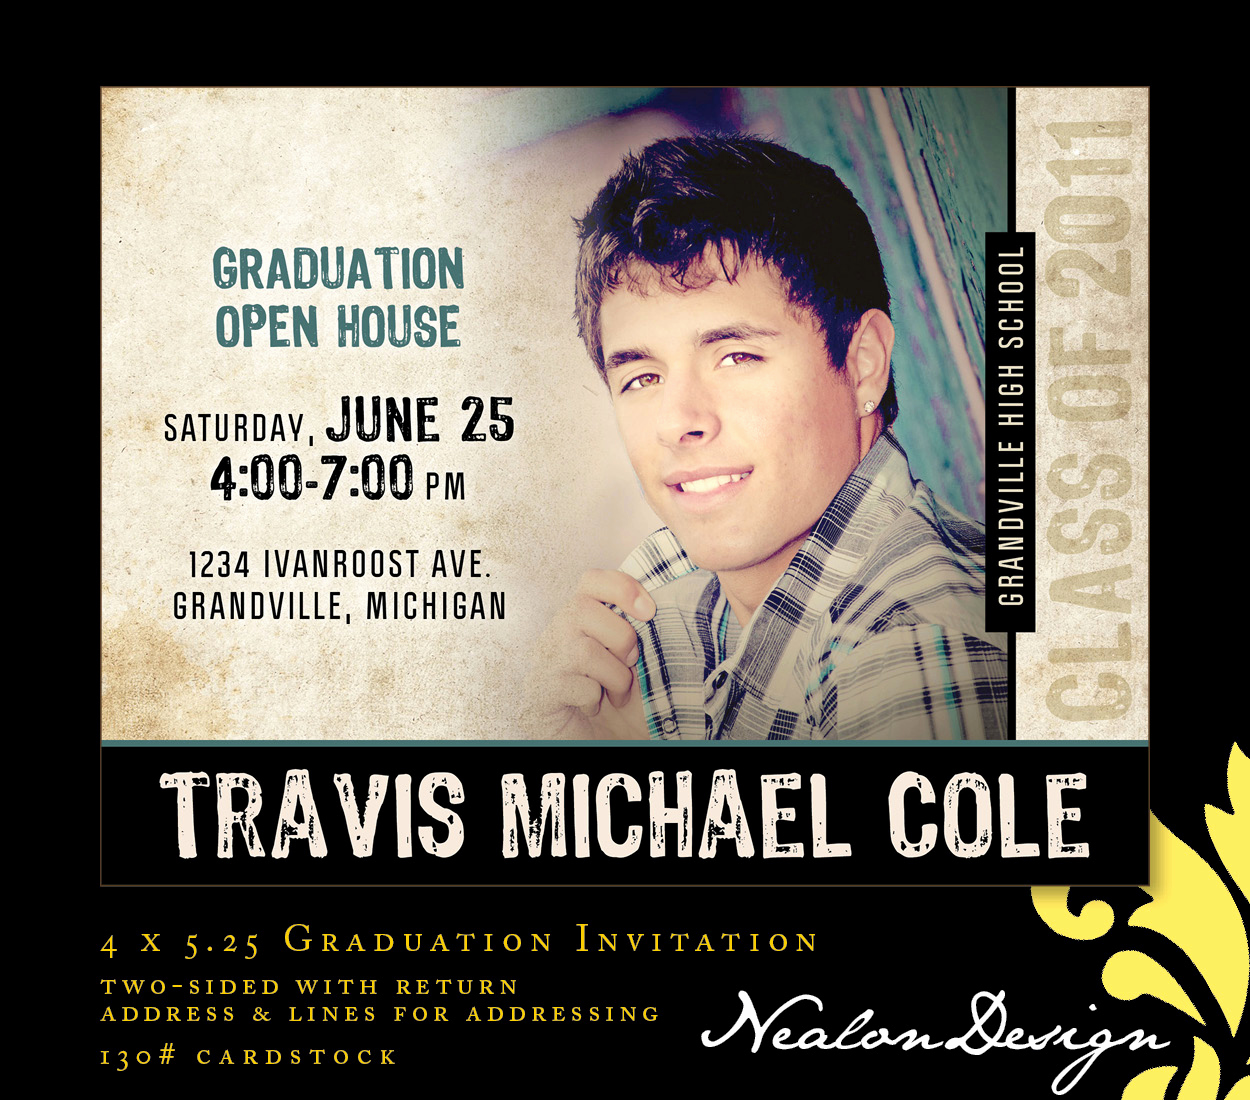 Graduation Open House Invitation Ideas Unique Graduation Cards Open House Party Invitations 2014